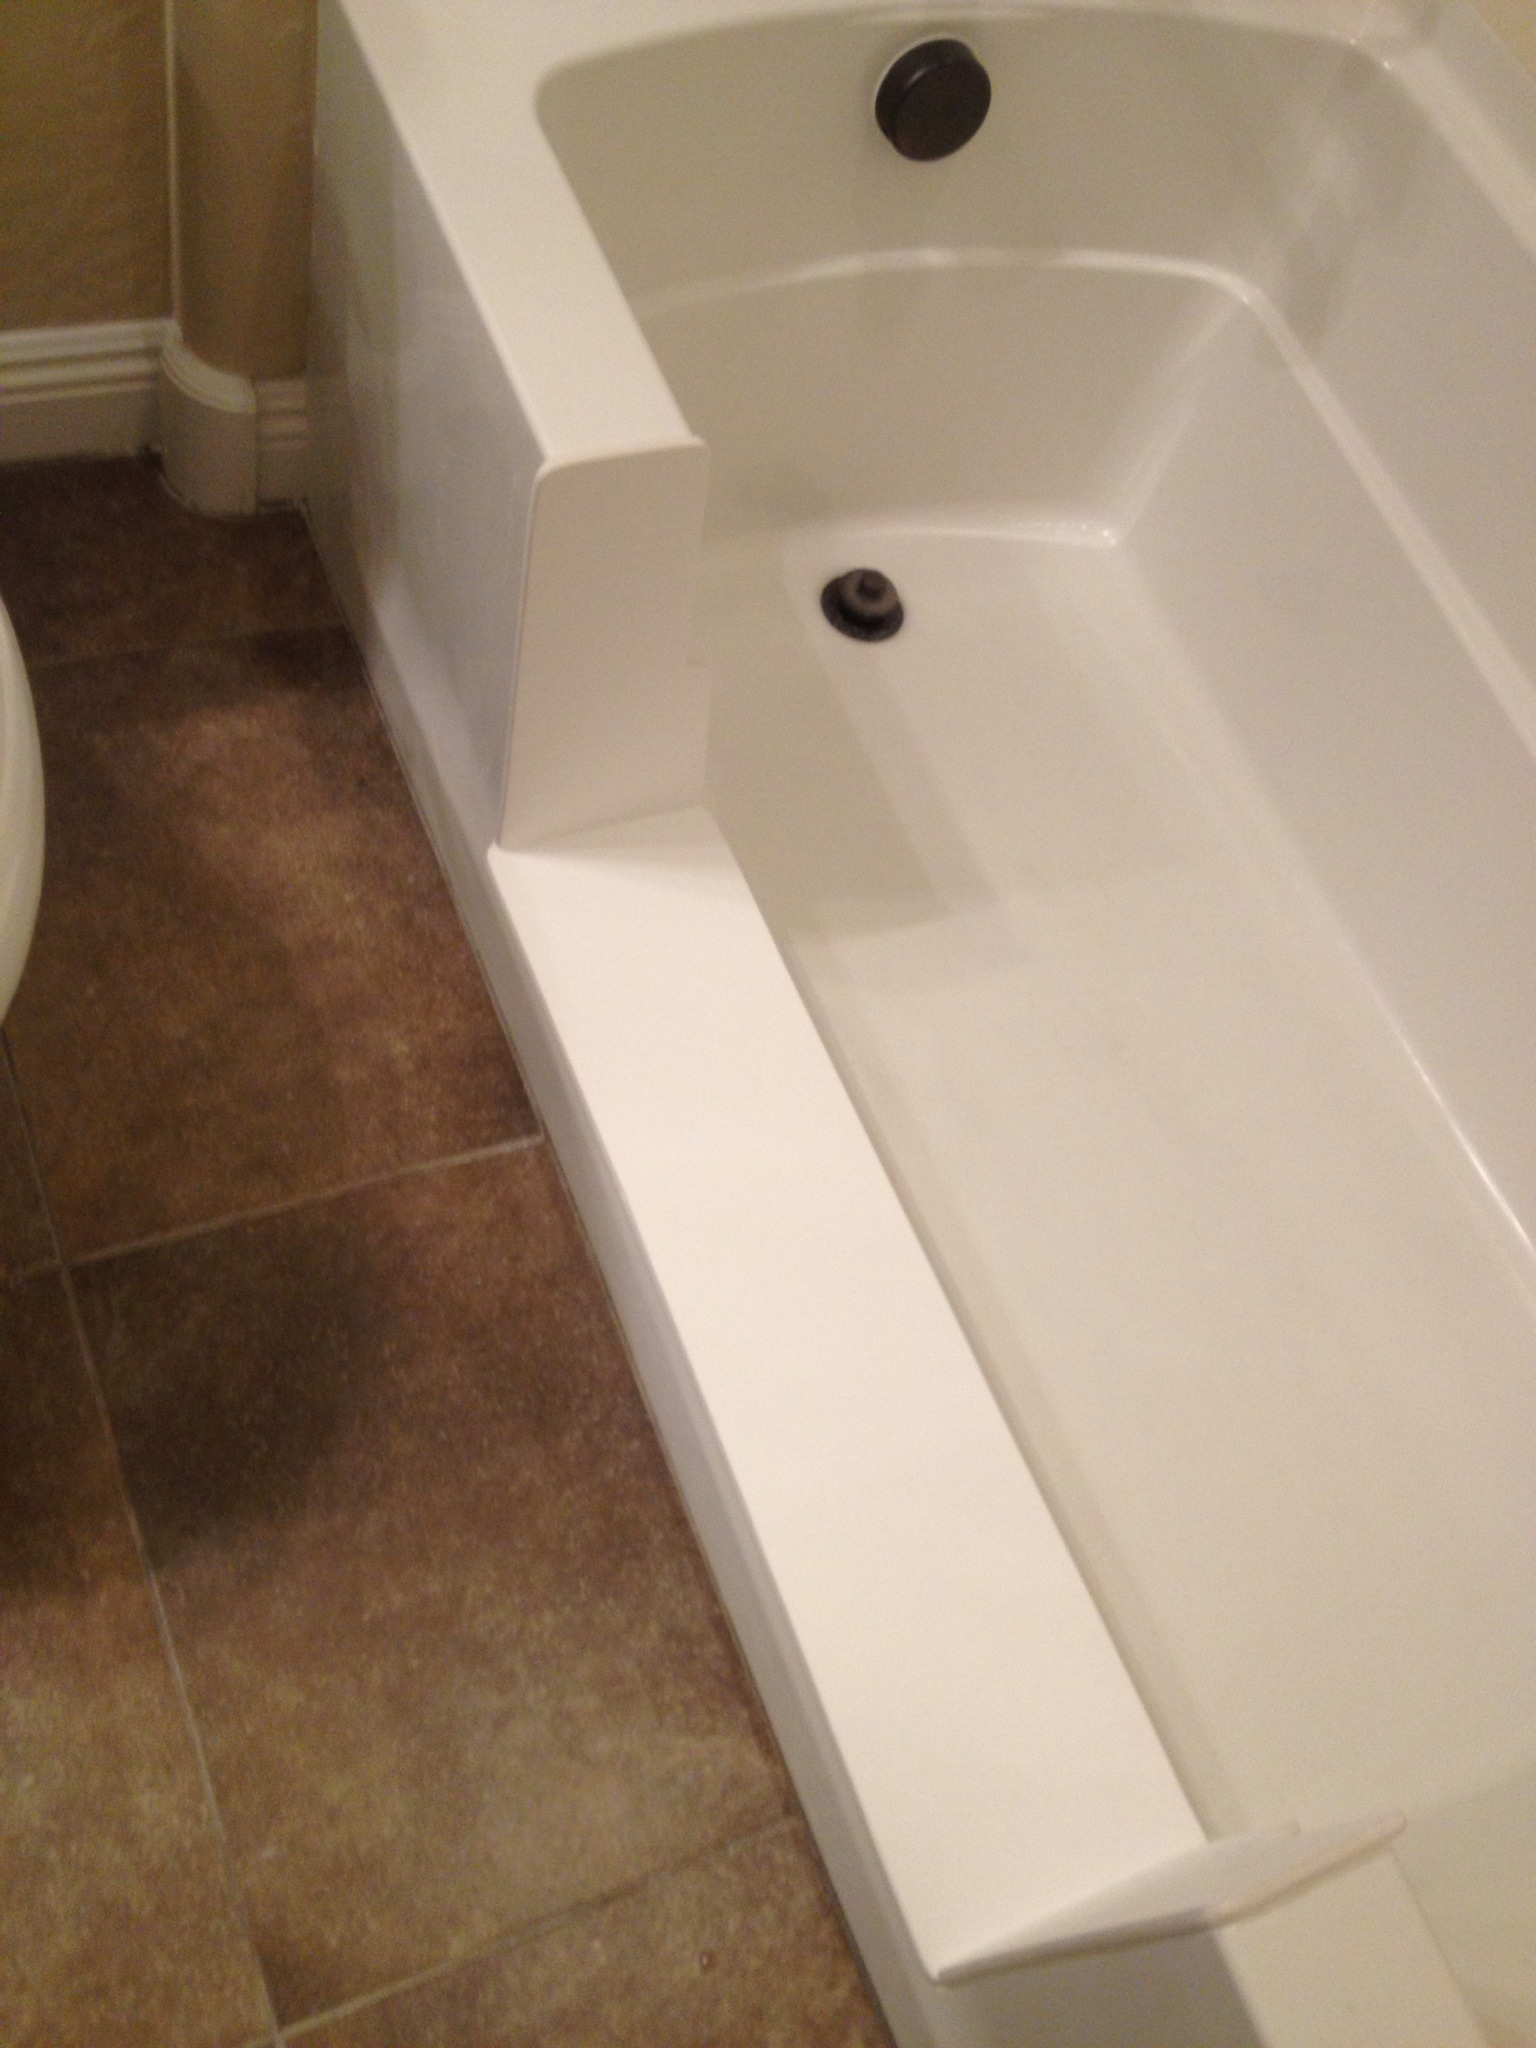 Bathtub Cutout Conversion to Shower Sun City 623-210-0720